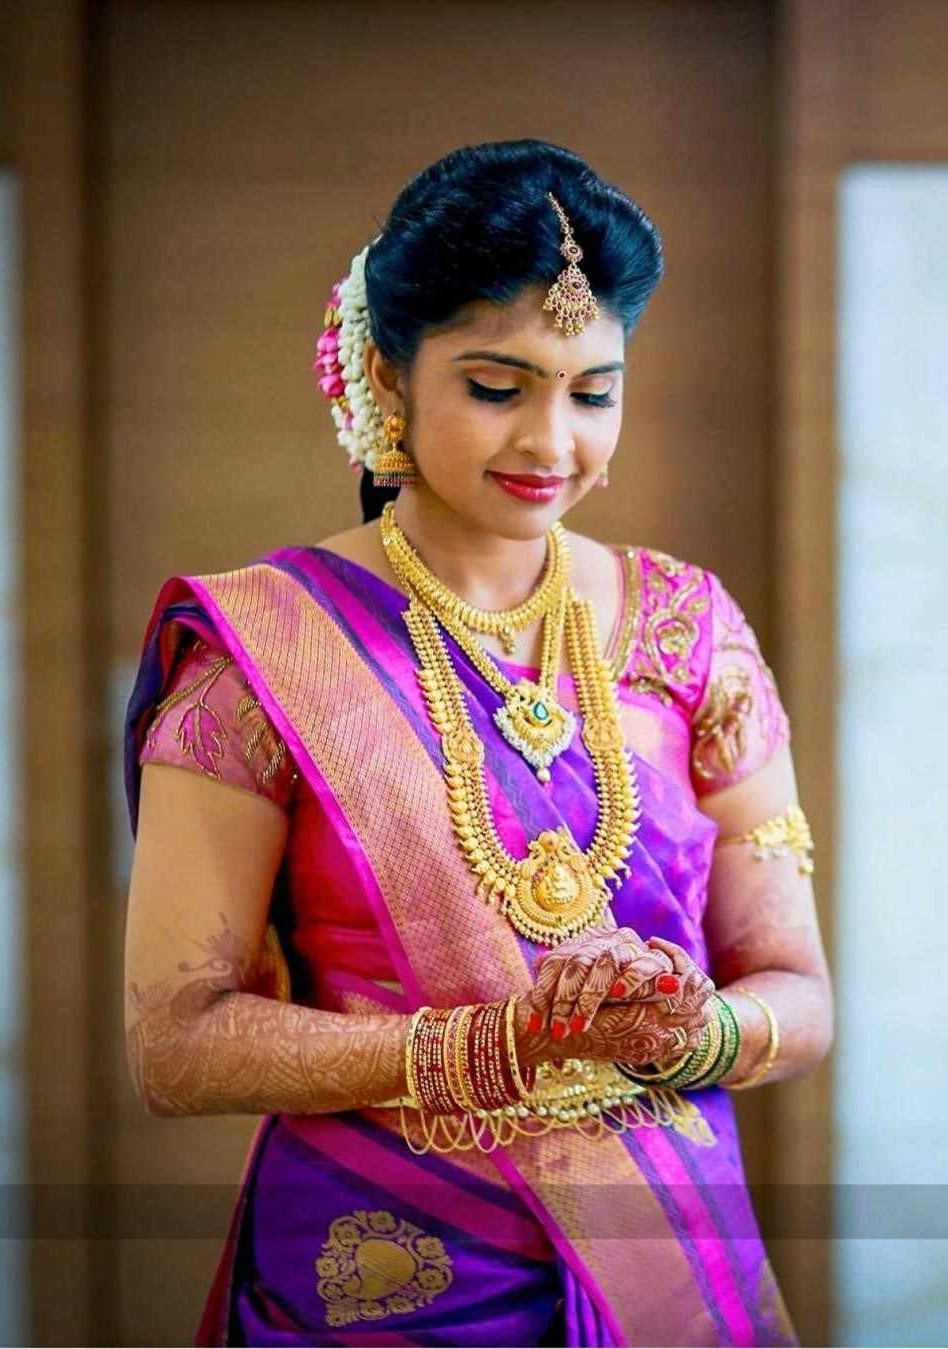 Tradition And Wedding Pin Reception Hairstyles For Sareeamulya Throughout Famous Wedding Hairstyles For Sarees (View 10 of 15)